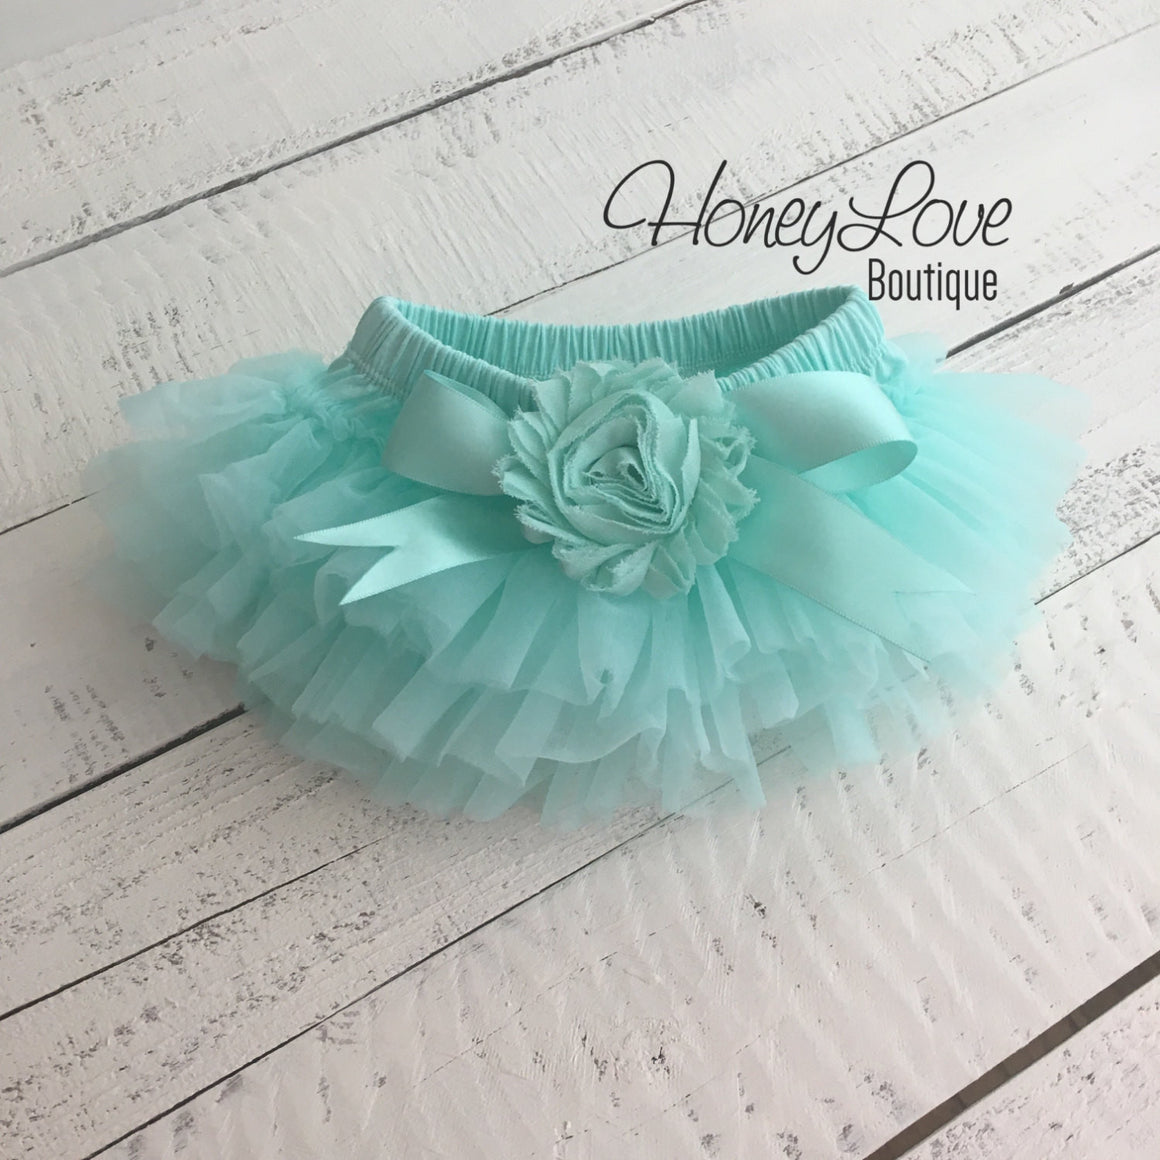 PERSONALIZED Name inside Heart - Silver Glitter and Mint/Aqua - Embellished tutu skirt bloomers - HoneyLoveBoutique